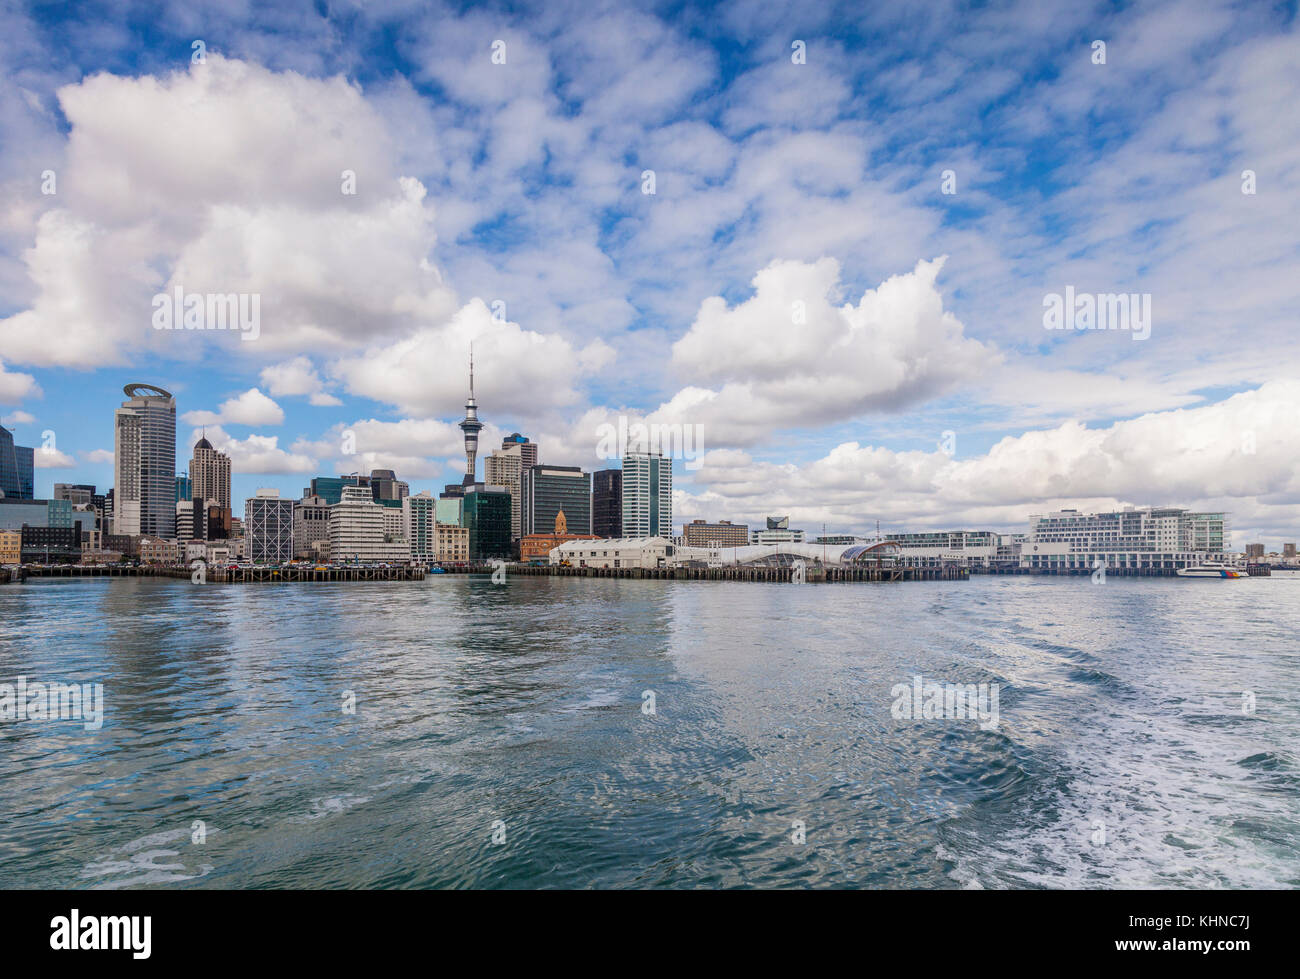 Auckland skyline from the sea, New Zealand - Stock Image